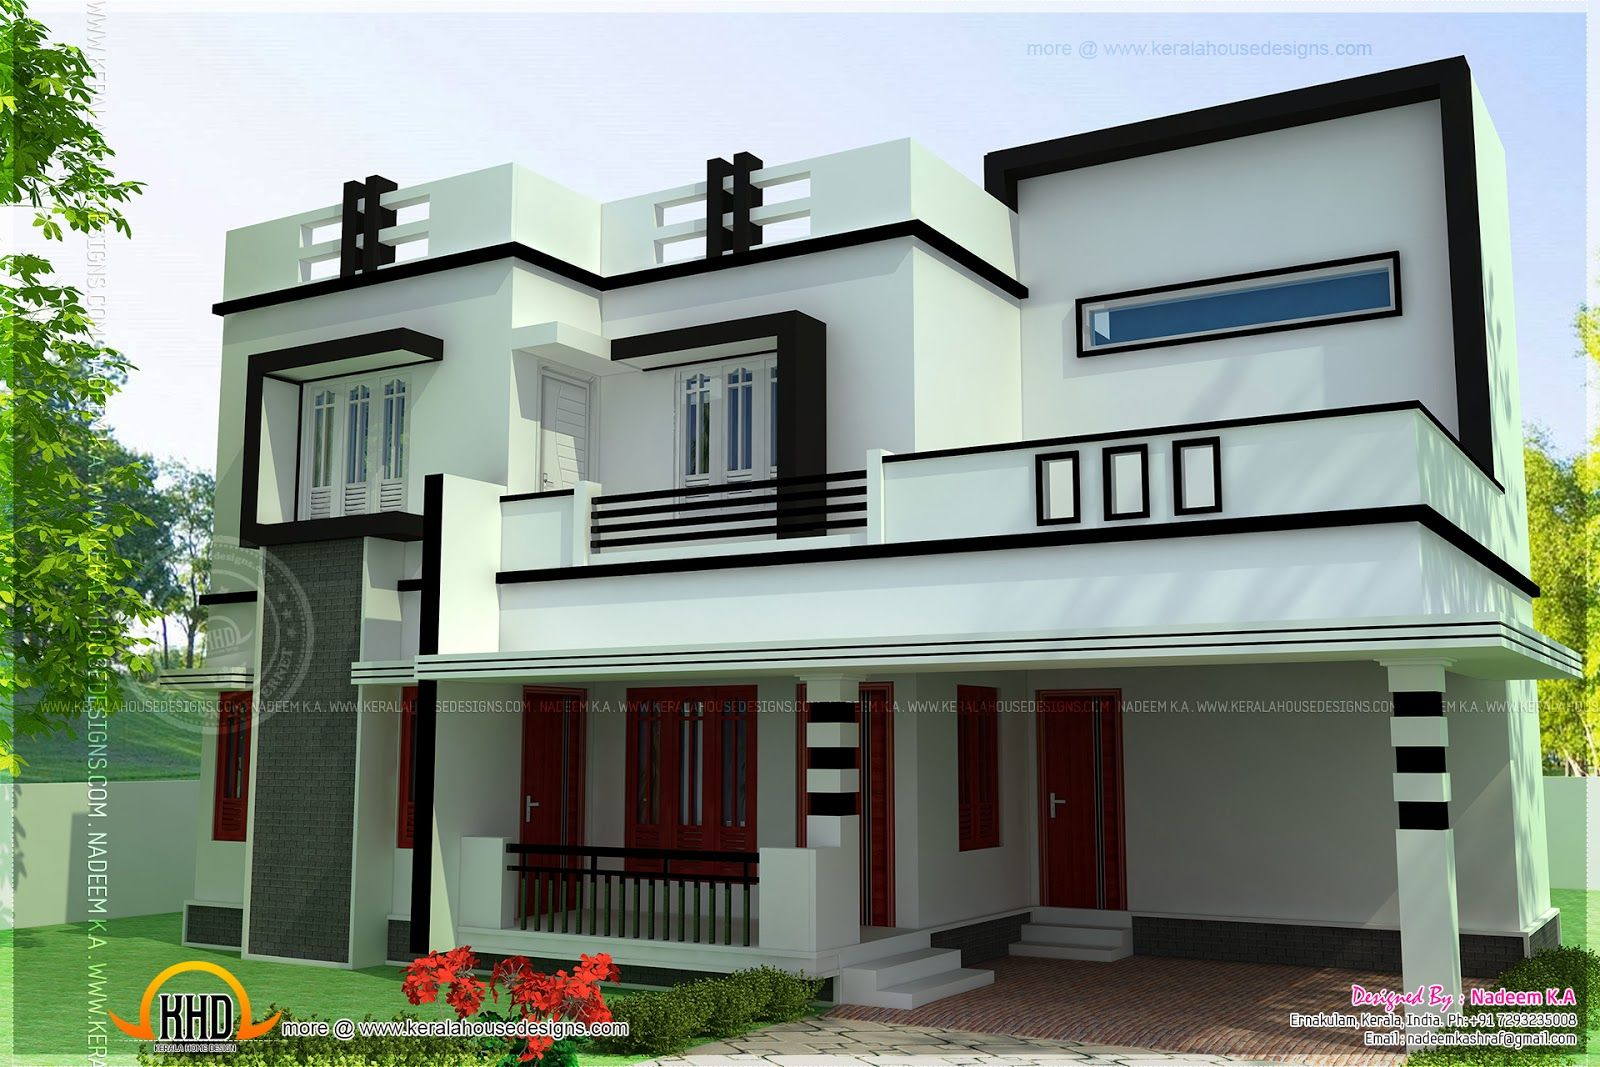 Fetching beautiful house designs india photo india house plan in modern style model house pinterest beautiful house plans india and house interior